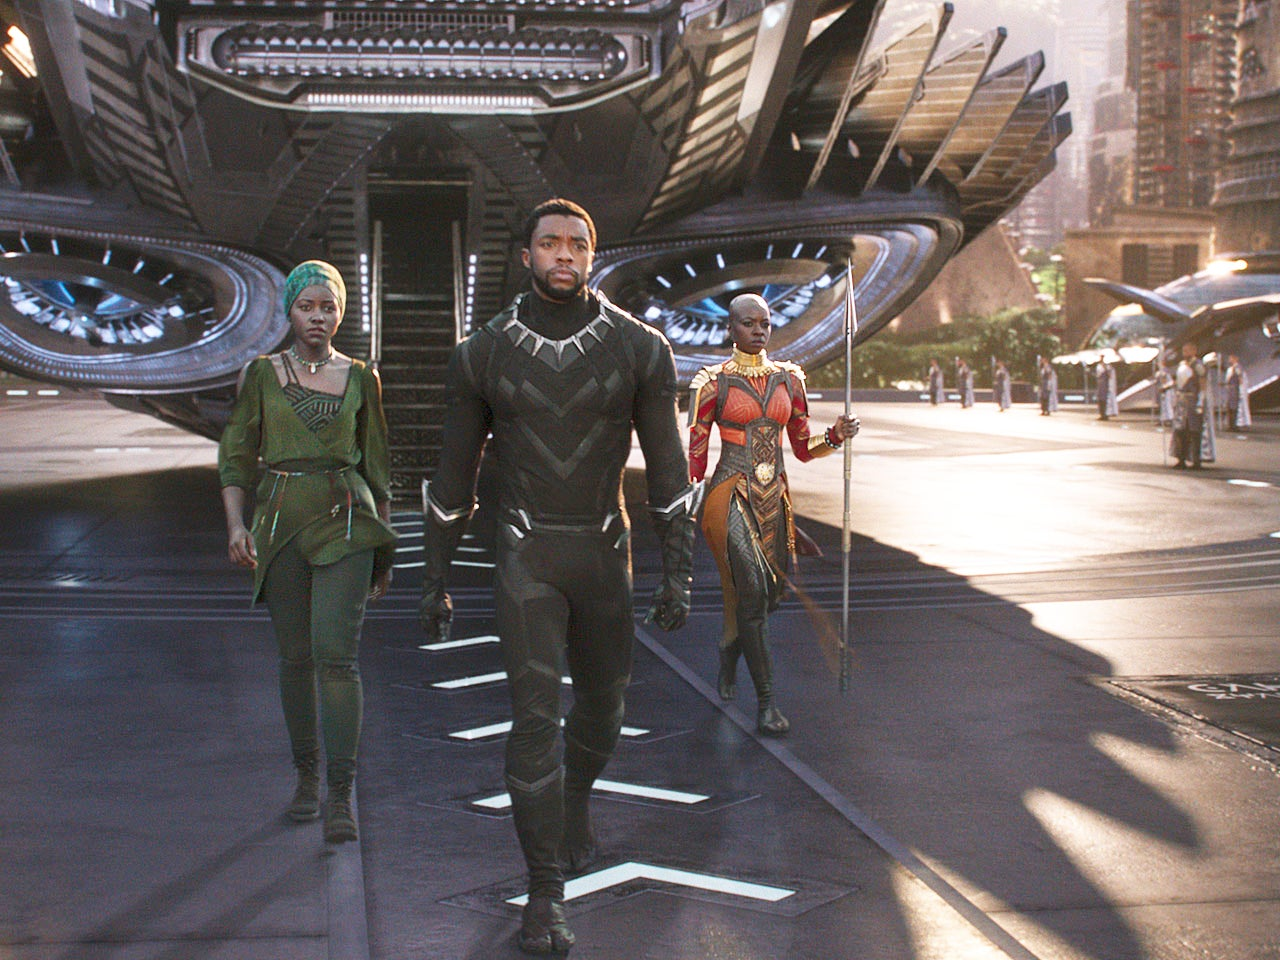 'Black Panther's' Lead Hairstylist Explains How She Created The Film's Stunning Natural Styles